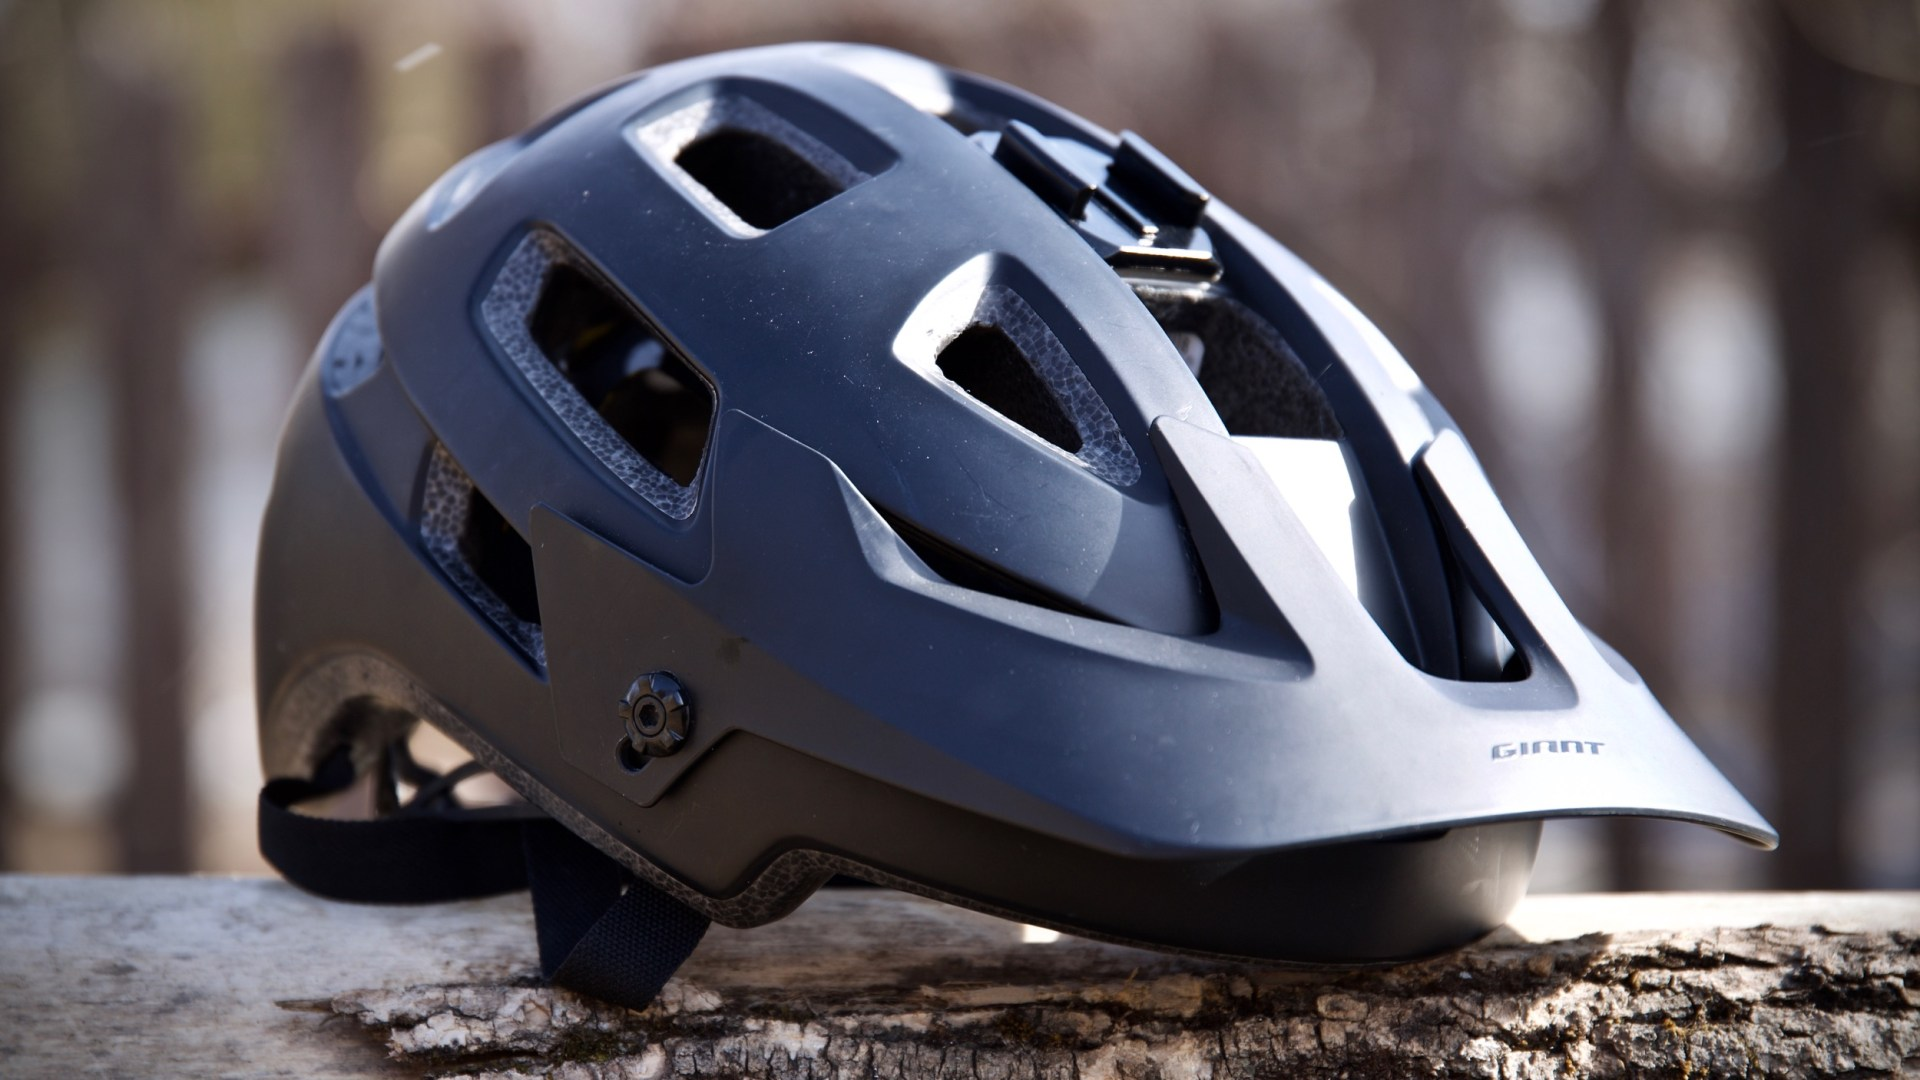 Tested Giant Rail Sx Mips 165 Bike Magazine